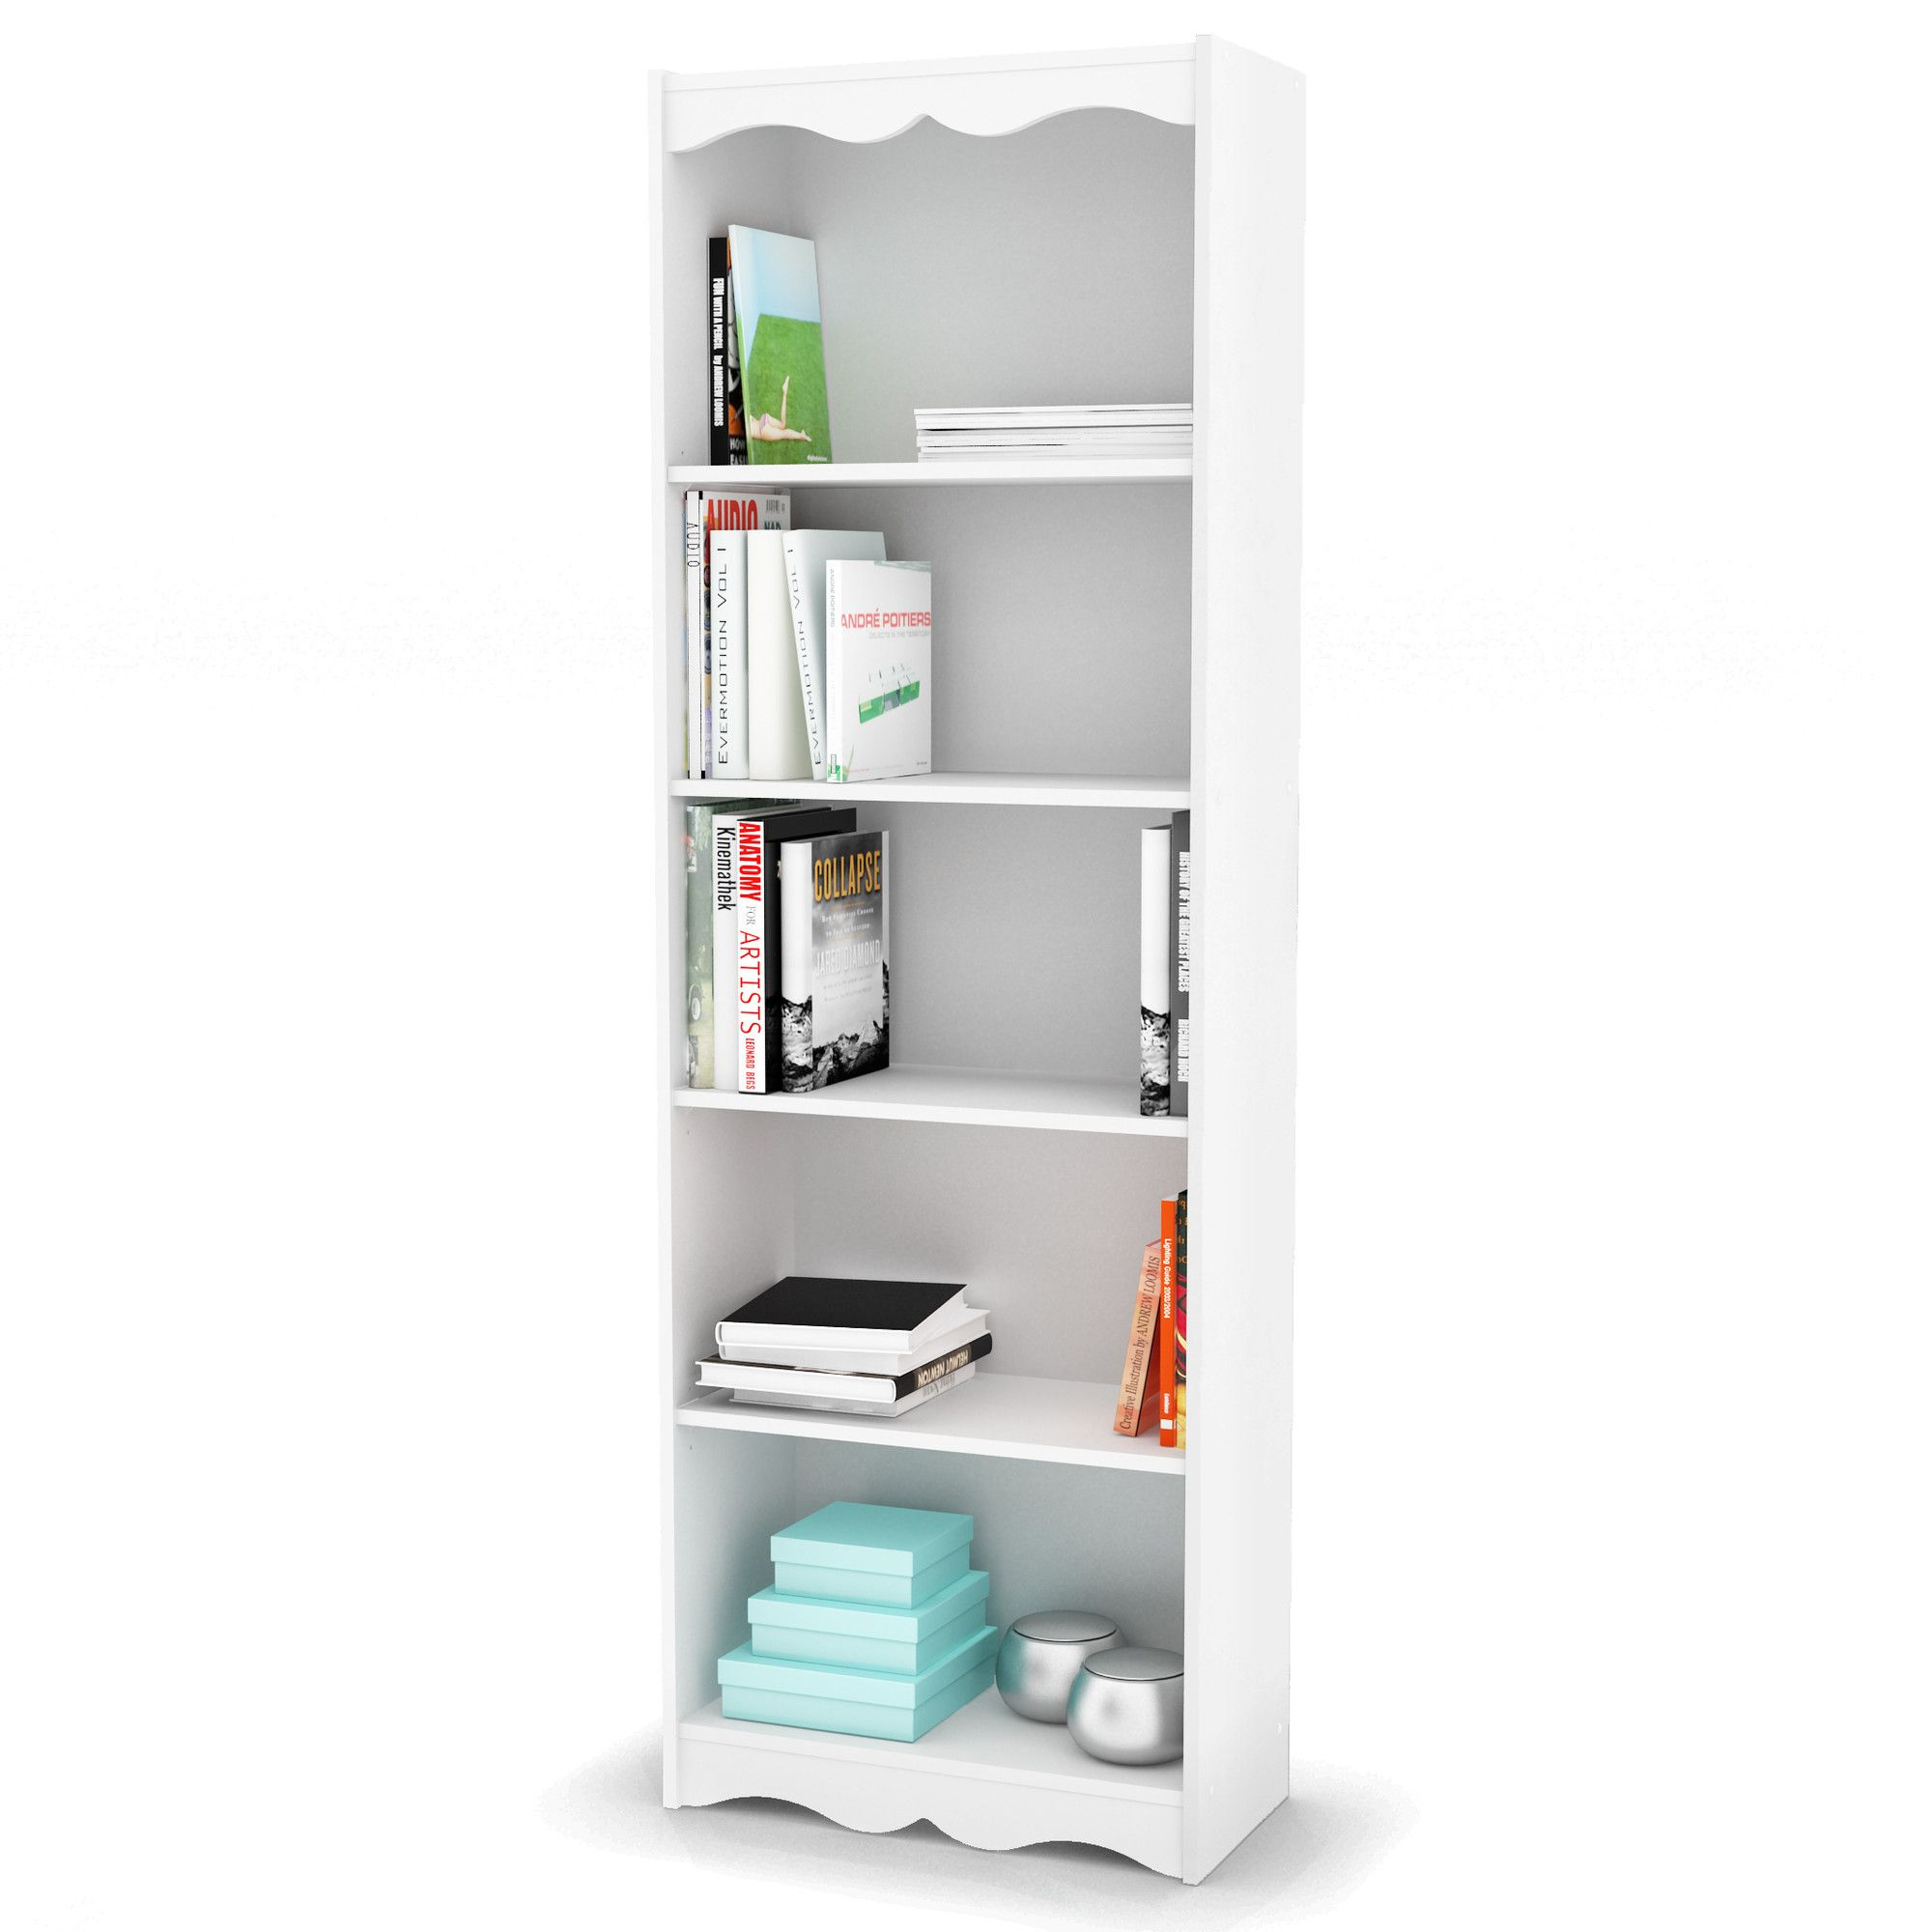 shore multiple walmart finishes bookcase com axess collection smart shelf south ip basics